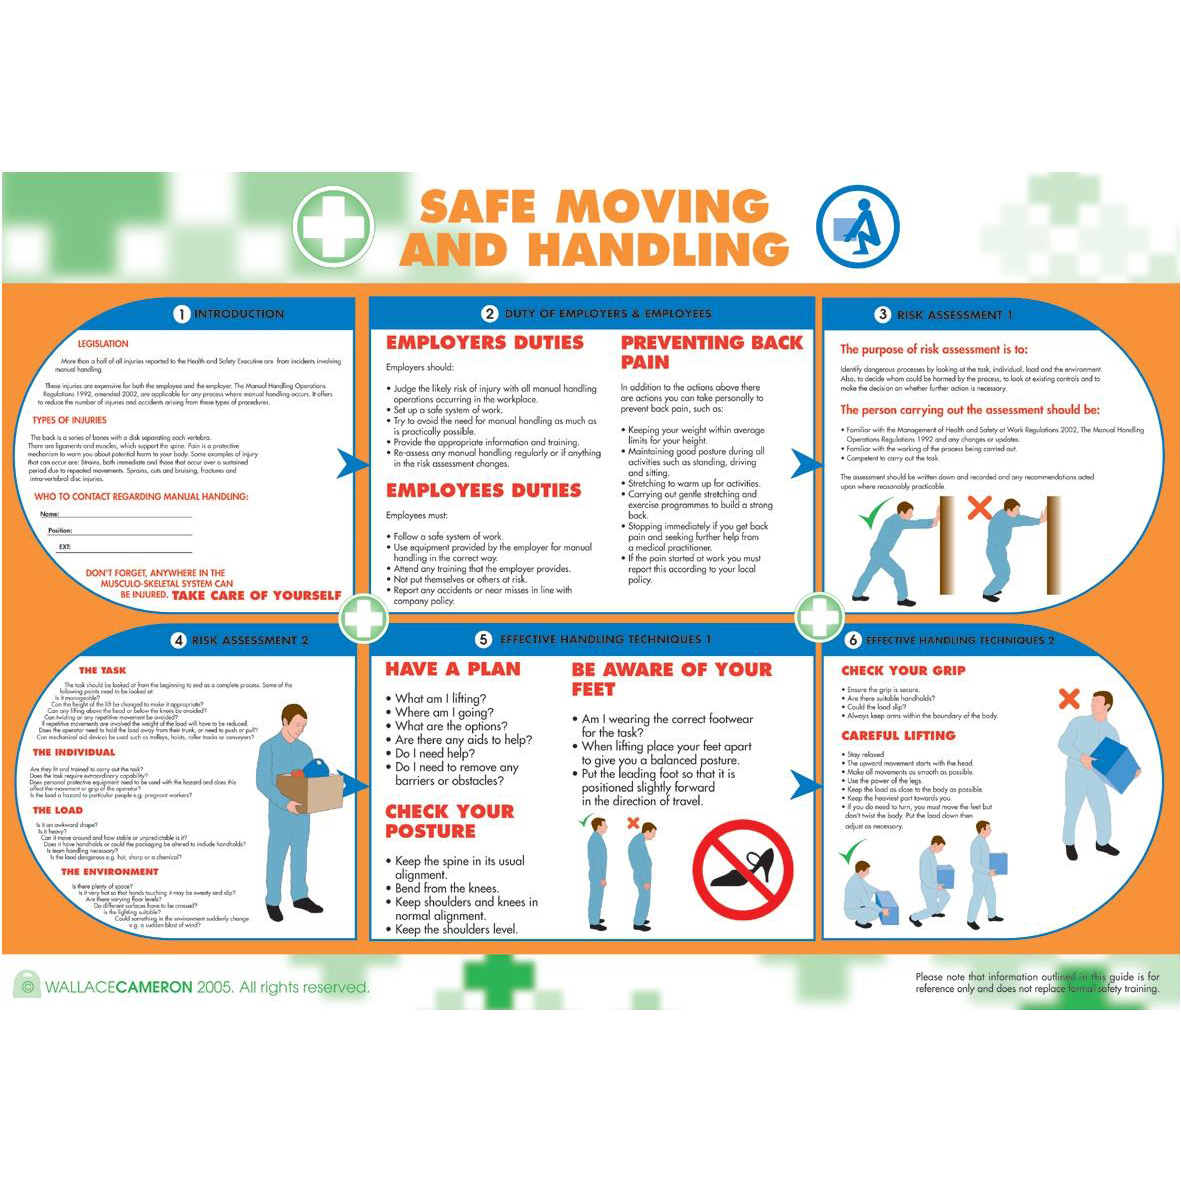 Advice Wallace Cameron Manual Handling Poster Laminated Wall-mountable W590xH420mm Ref 5405022